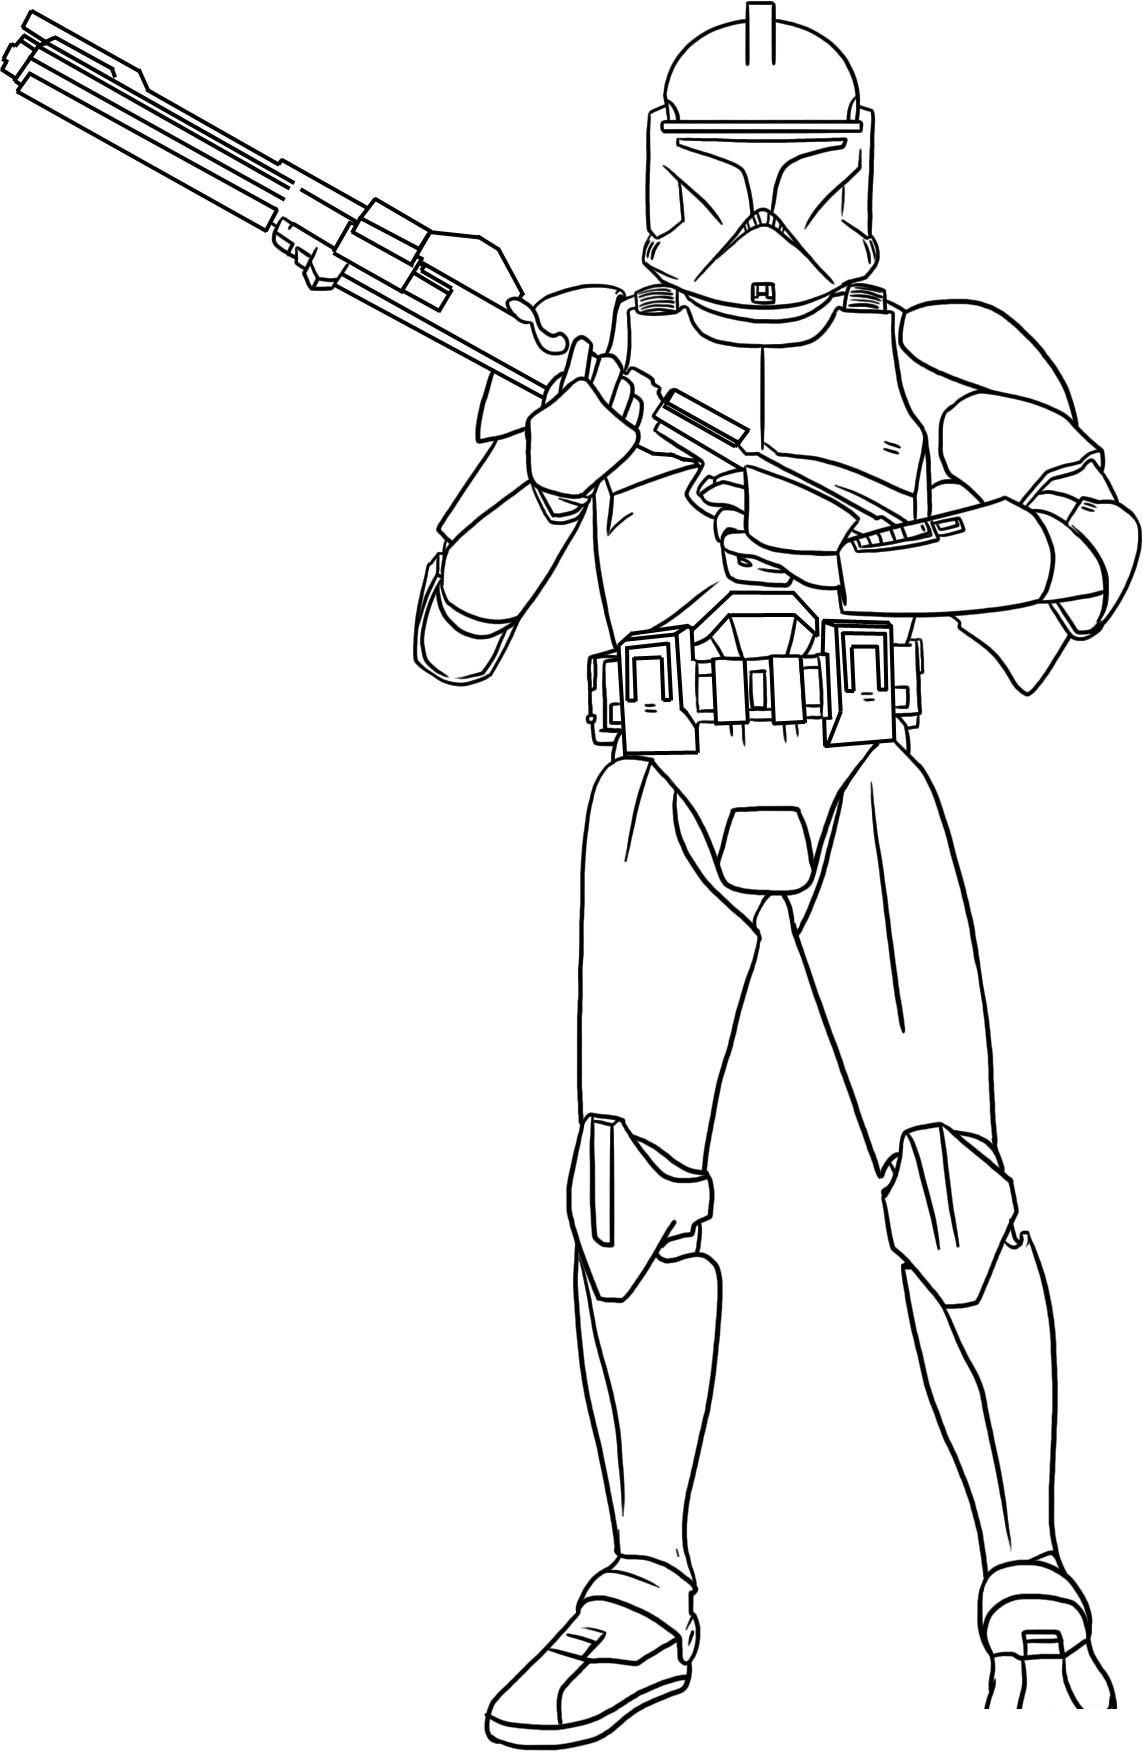 Ausmalbilder Robin Hood Disney : Star Wars The Force Awakens Coloring Pages Wecoloringpage